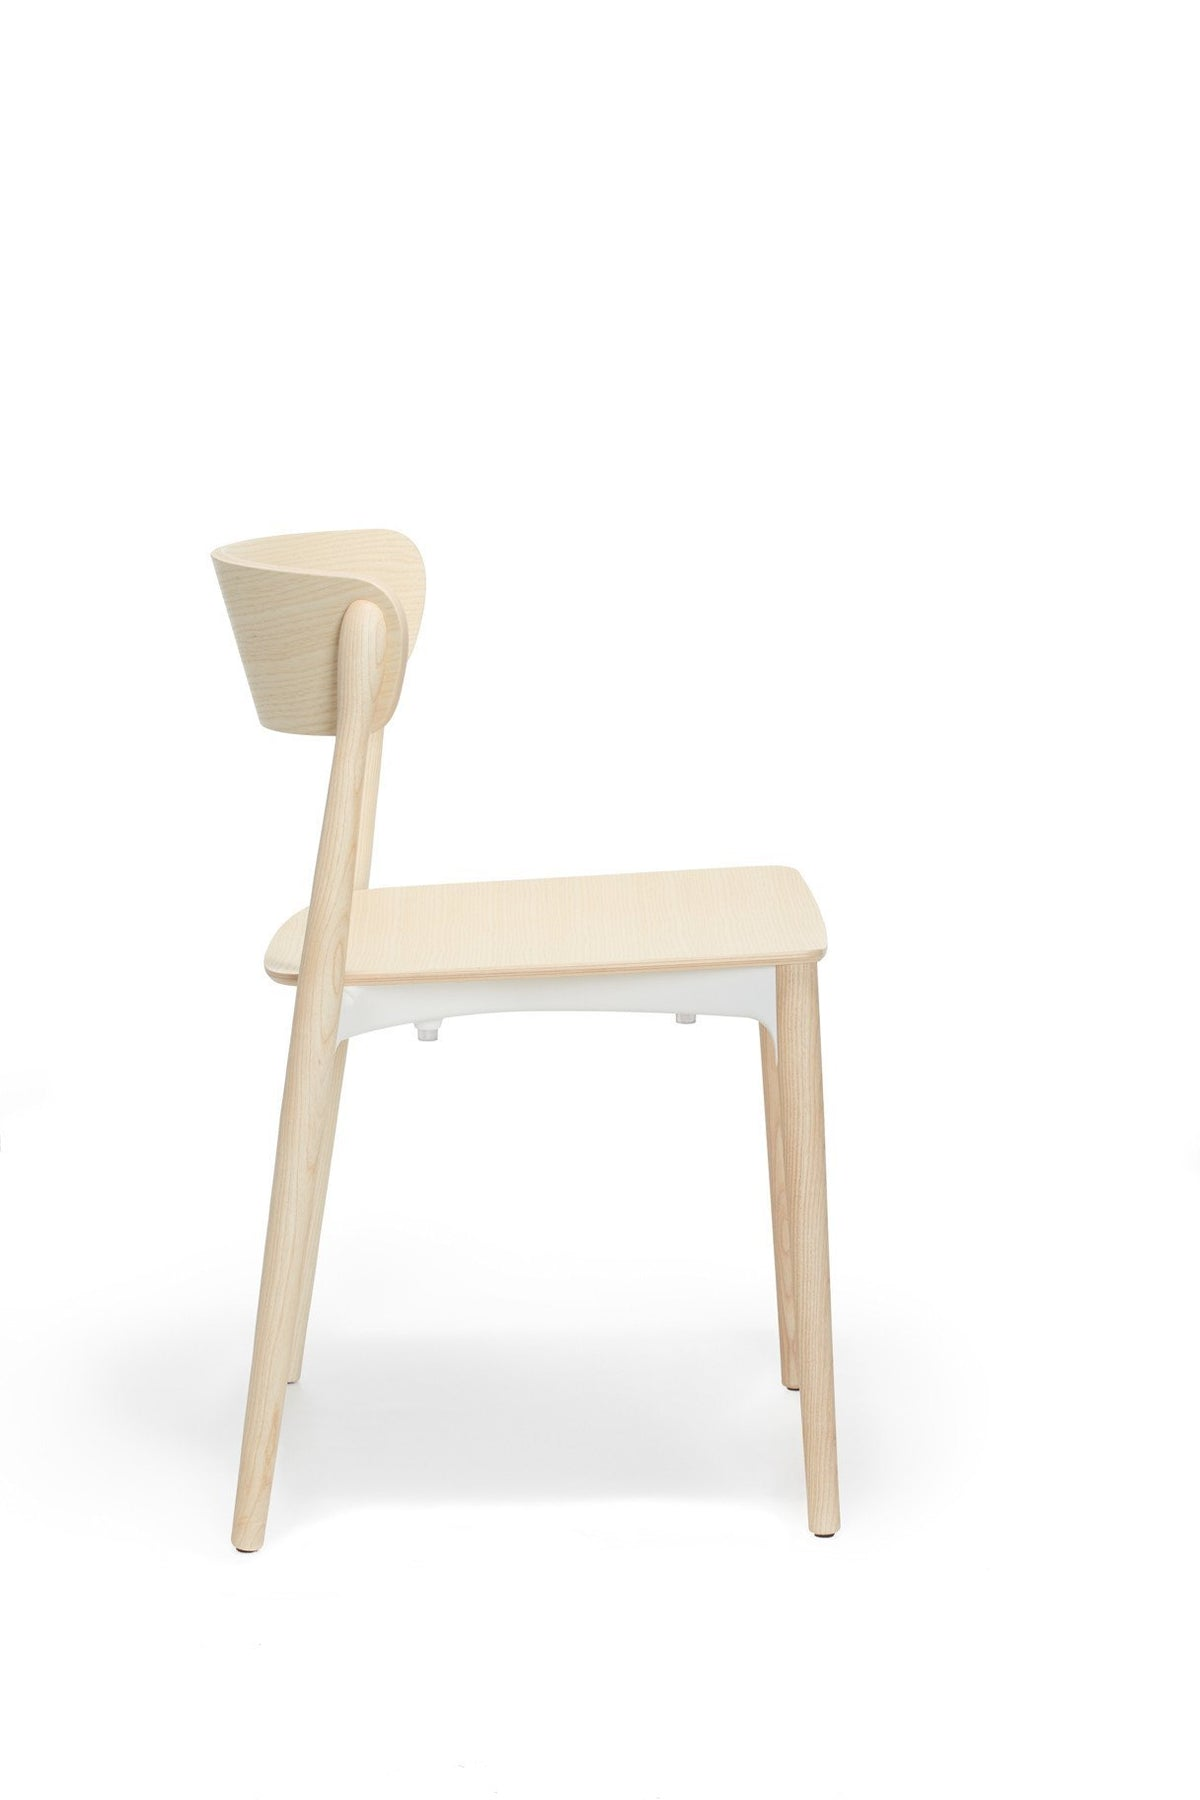 Nemea 2820 Side Chair-Pedrali-Contract Furniture Store